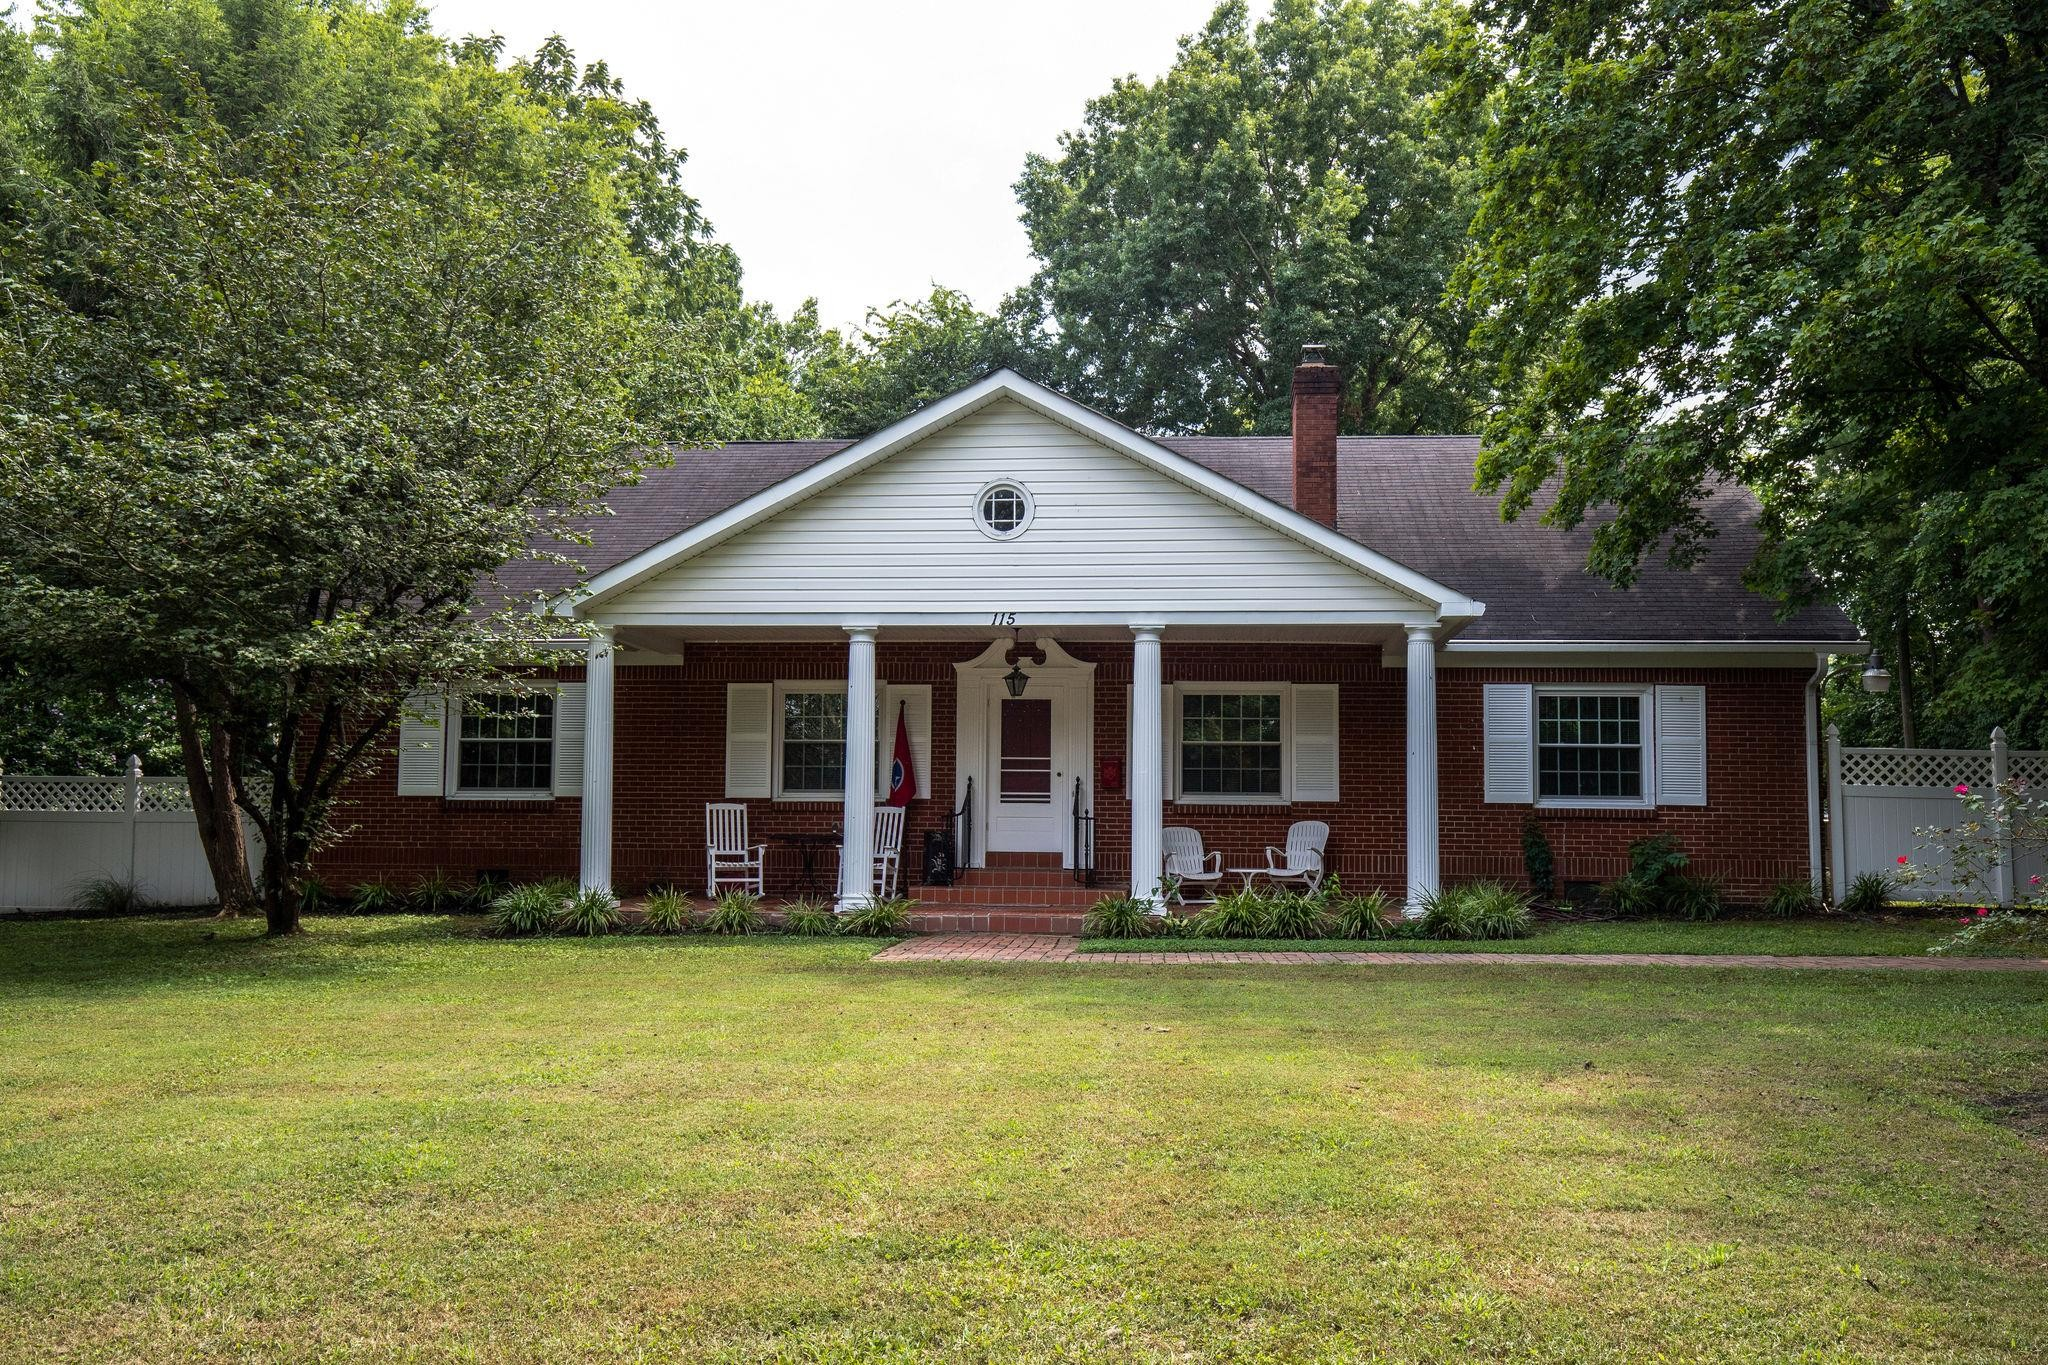 115 Hollywood St, Goodlettsville, TN 37072 - Goodlettsville, TN real estate listing